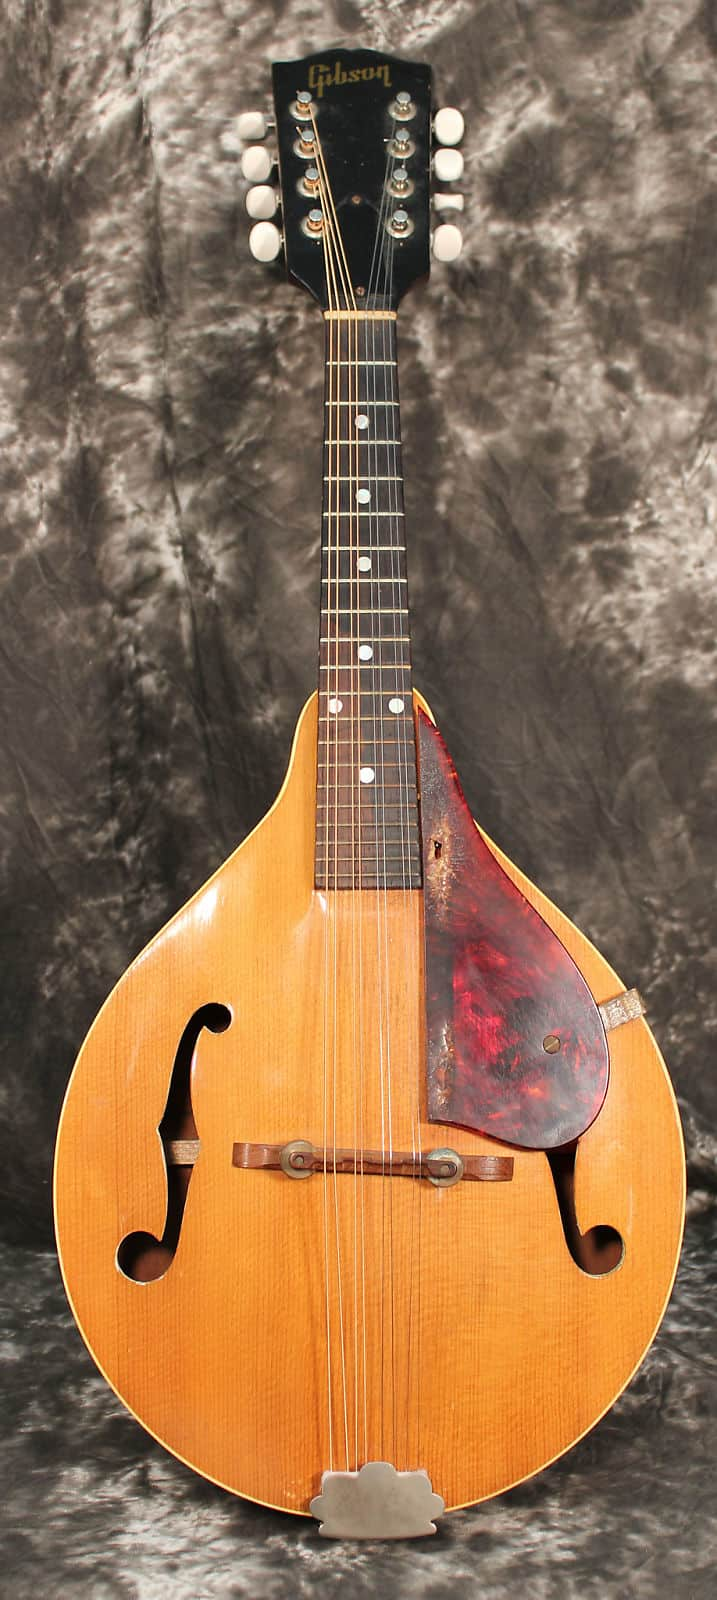 1950 vintage gibson a 40 mandolin natural w nohsc reverb. Black Bedroom Furniture Sets. Home Design Ideas